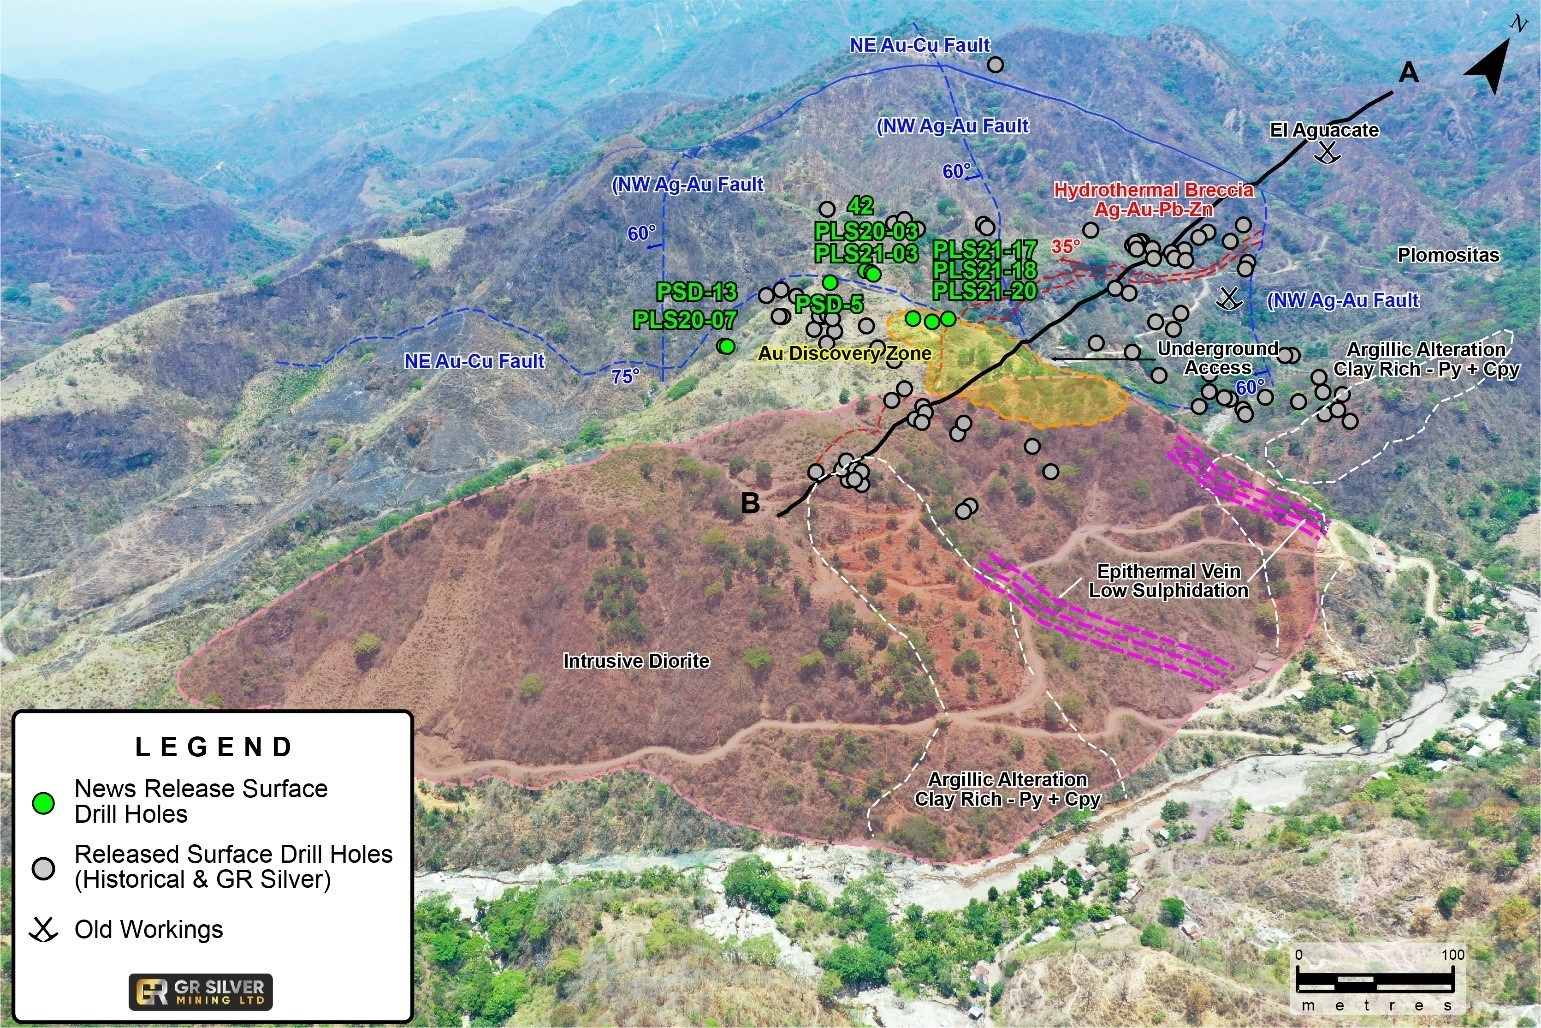 Figure 1: Plomosas Mine Area: Large Epithermal System with New Discoveries (Drone image) (CNW Group/GR Silver Mining Ltd.)